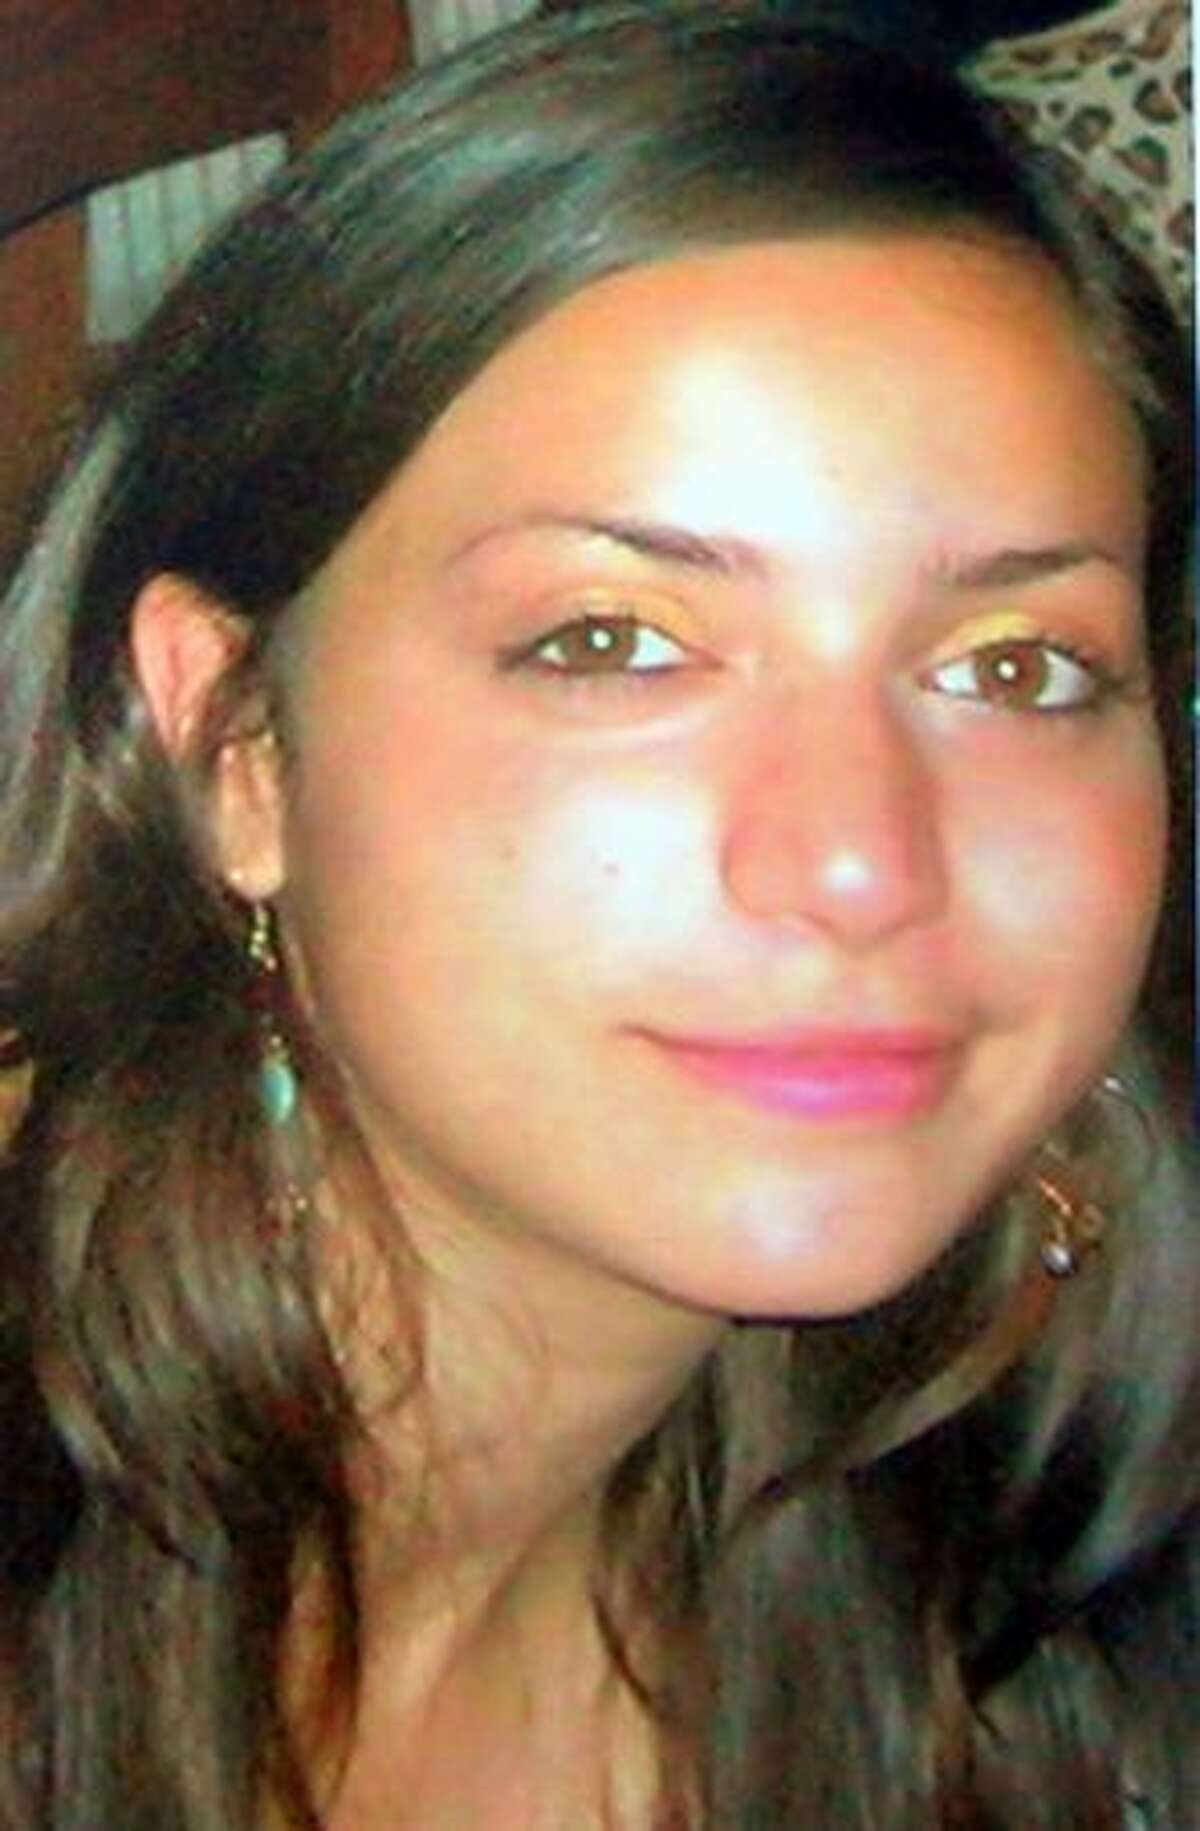 A reproduction of an undated picture shows British student Meredith Kercher in Perugia, Italy. American student Amanda Knox, her former Italian boyfriend Raffaele Sollecito and Rudy Guede from the Ivory Coast were charged with the murder of British student Meredith Kercher in Italy.